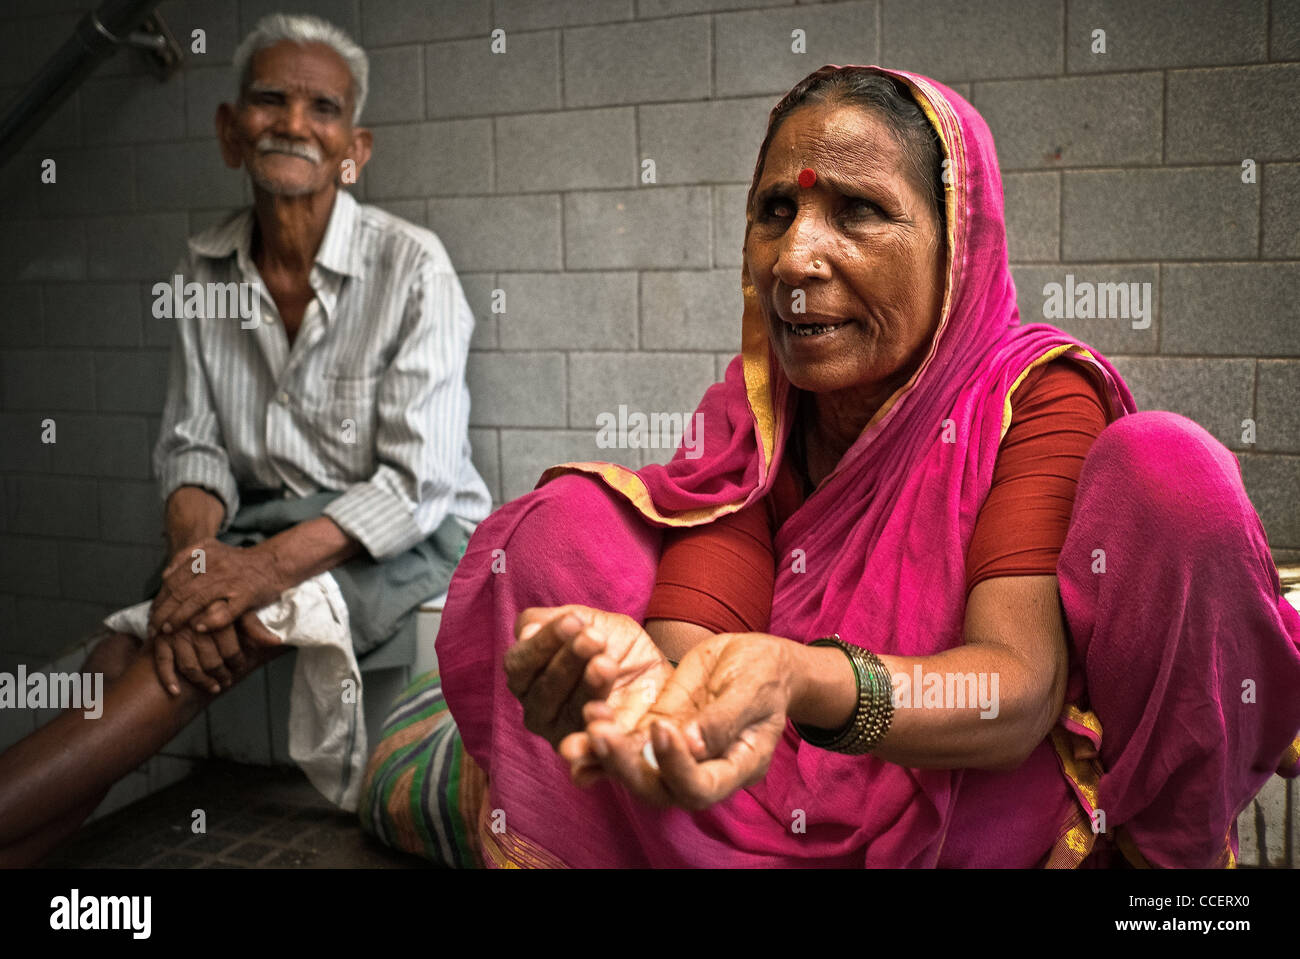 Untouchable and disabled Bombay., Blind beggar. - Stock Image